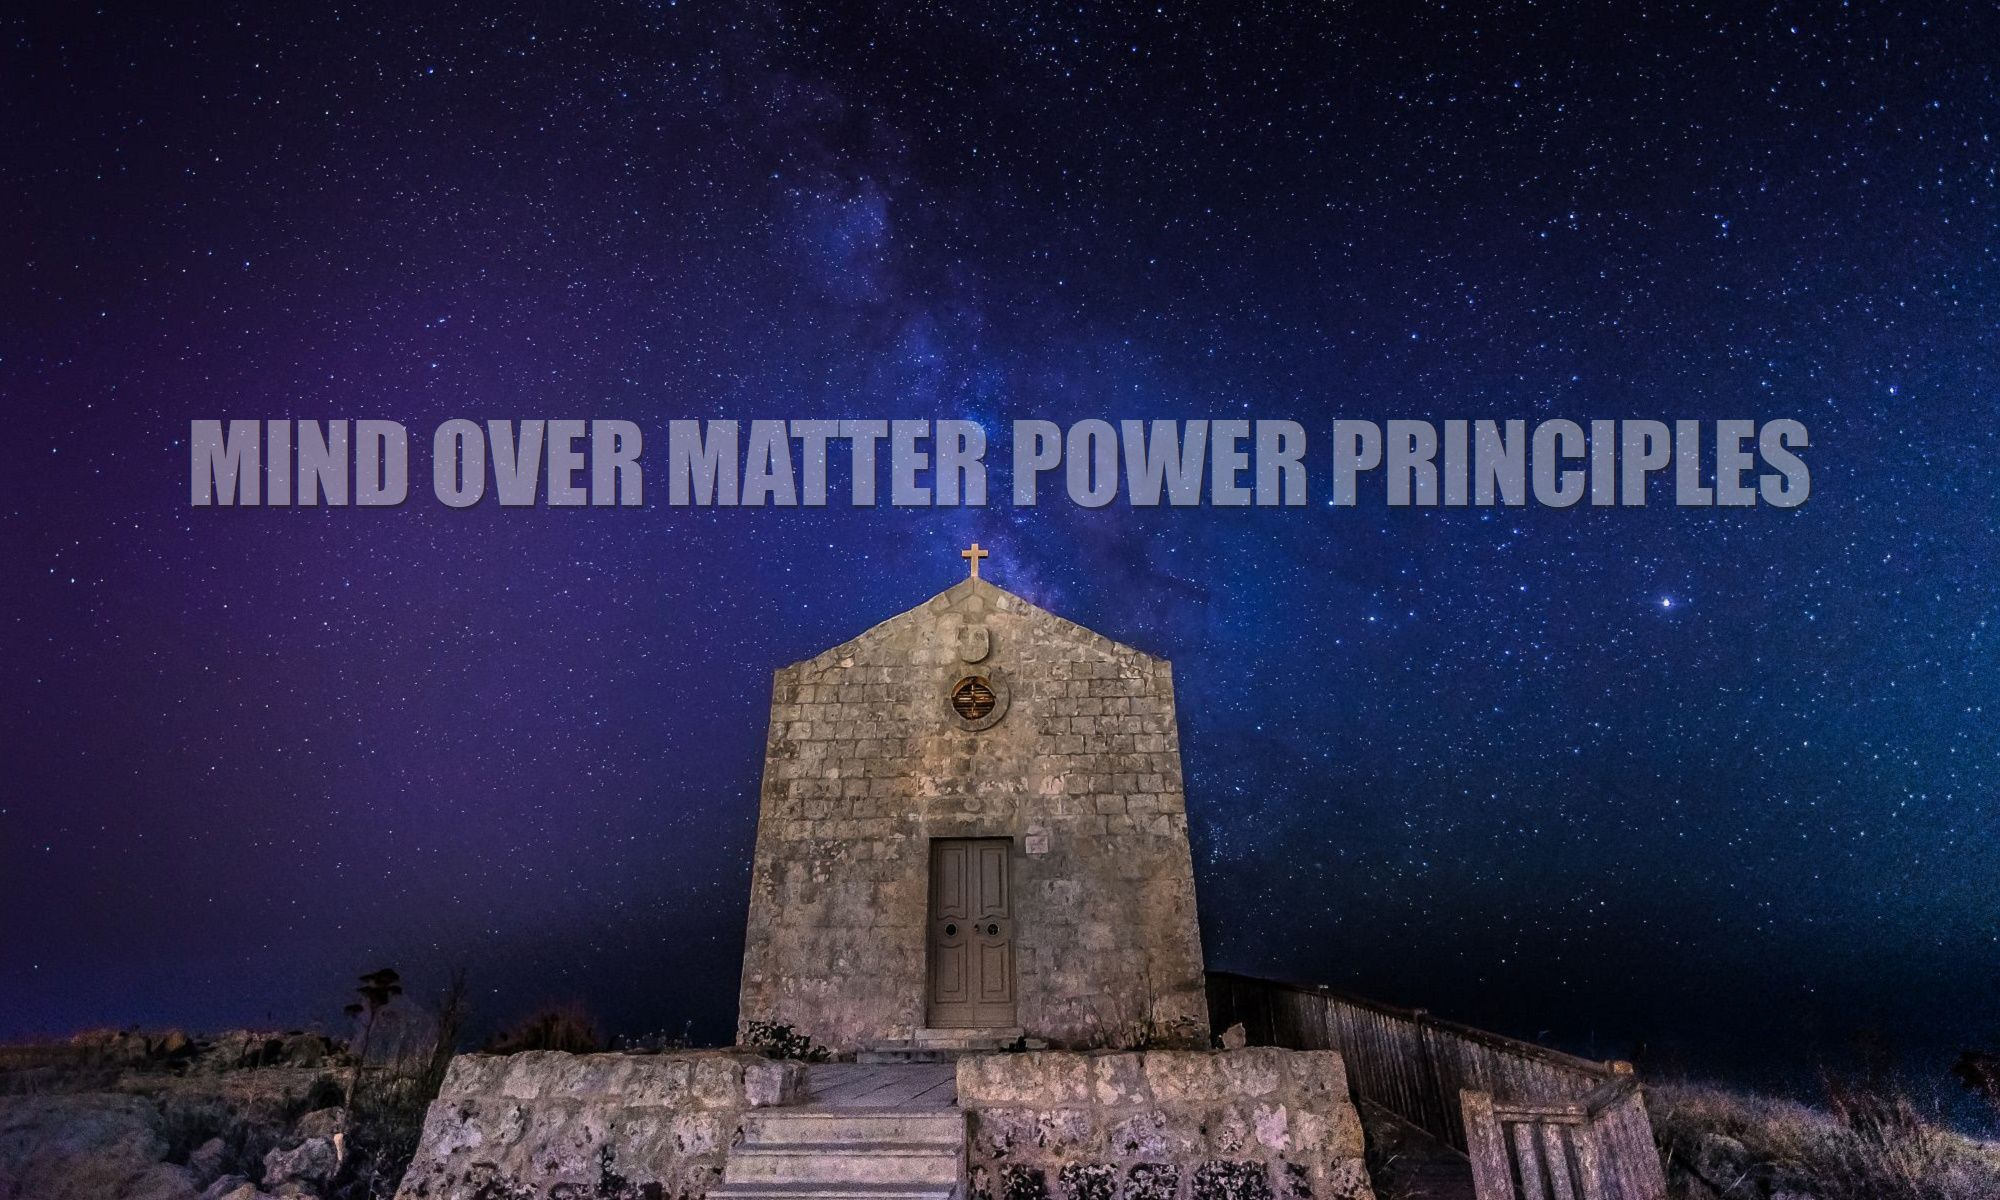 How-Do-I-Apply-Mind-Power-Techniques-Metaphysics-Application-Principles-Powerful-Mind-Over-Matter-1